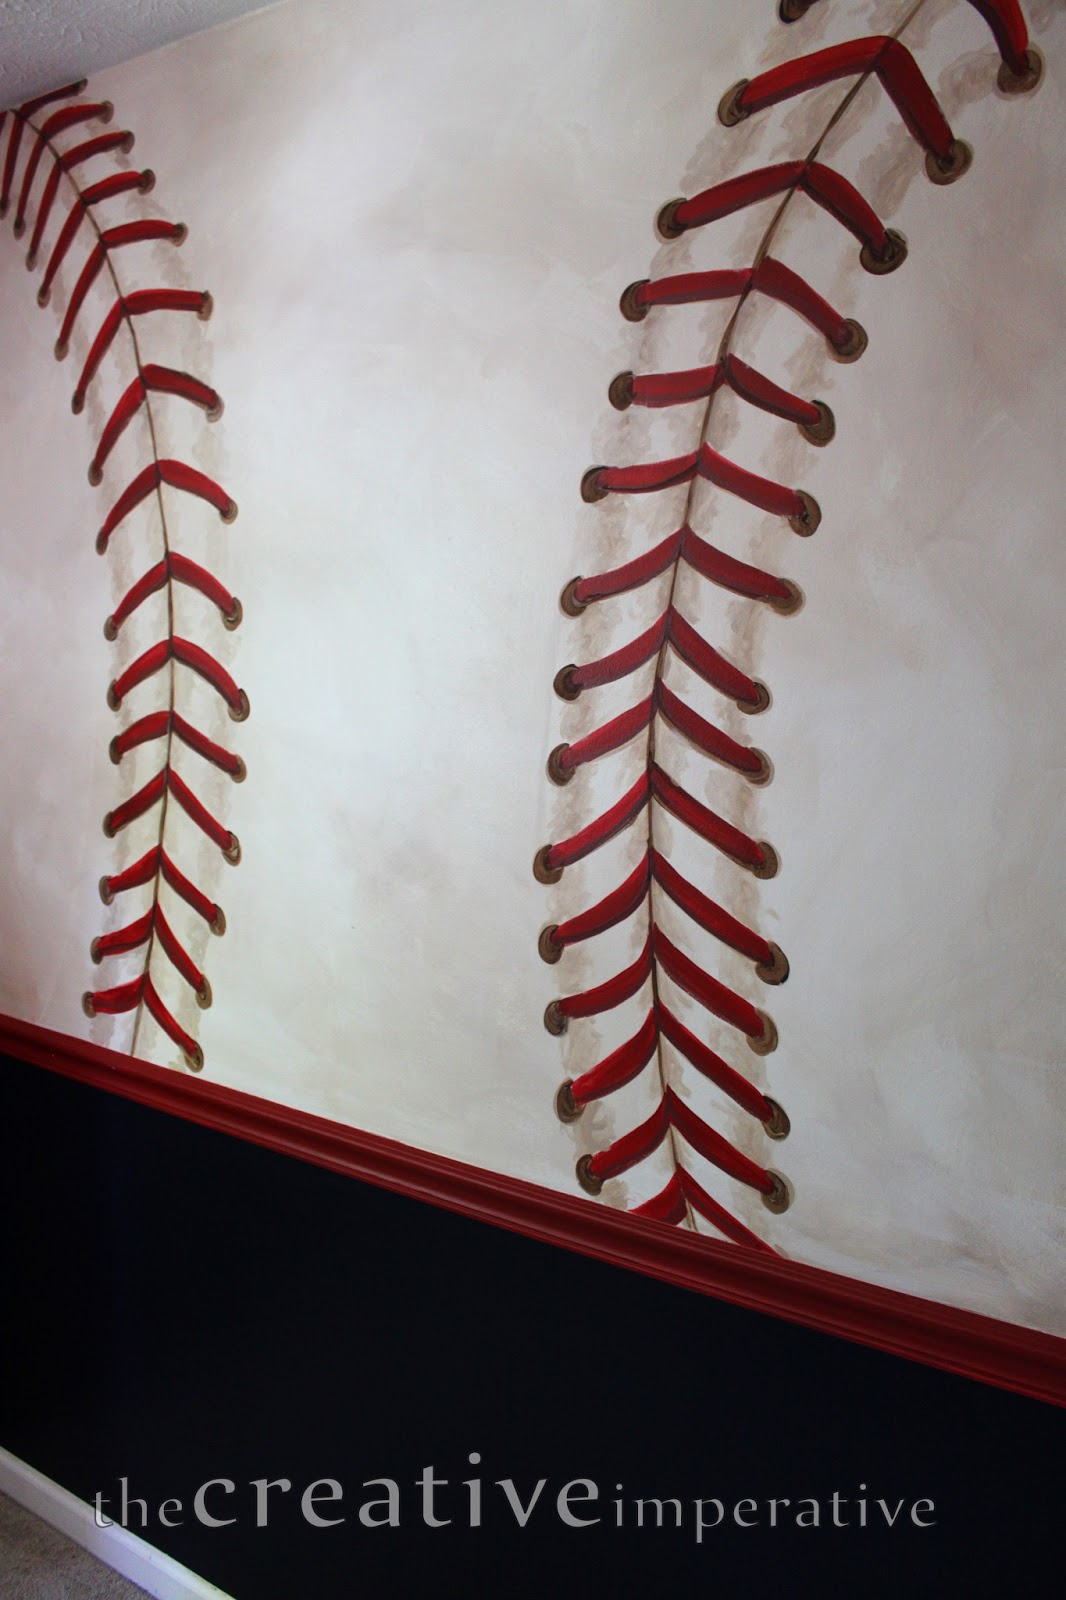 the creative imperative some yankees and nationals baseball wall murals the best inspiration for interiors